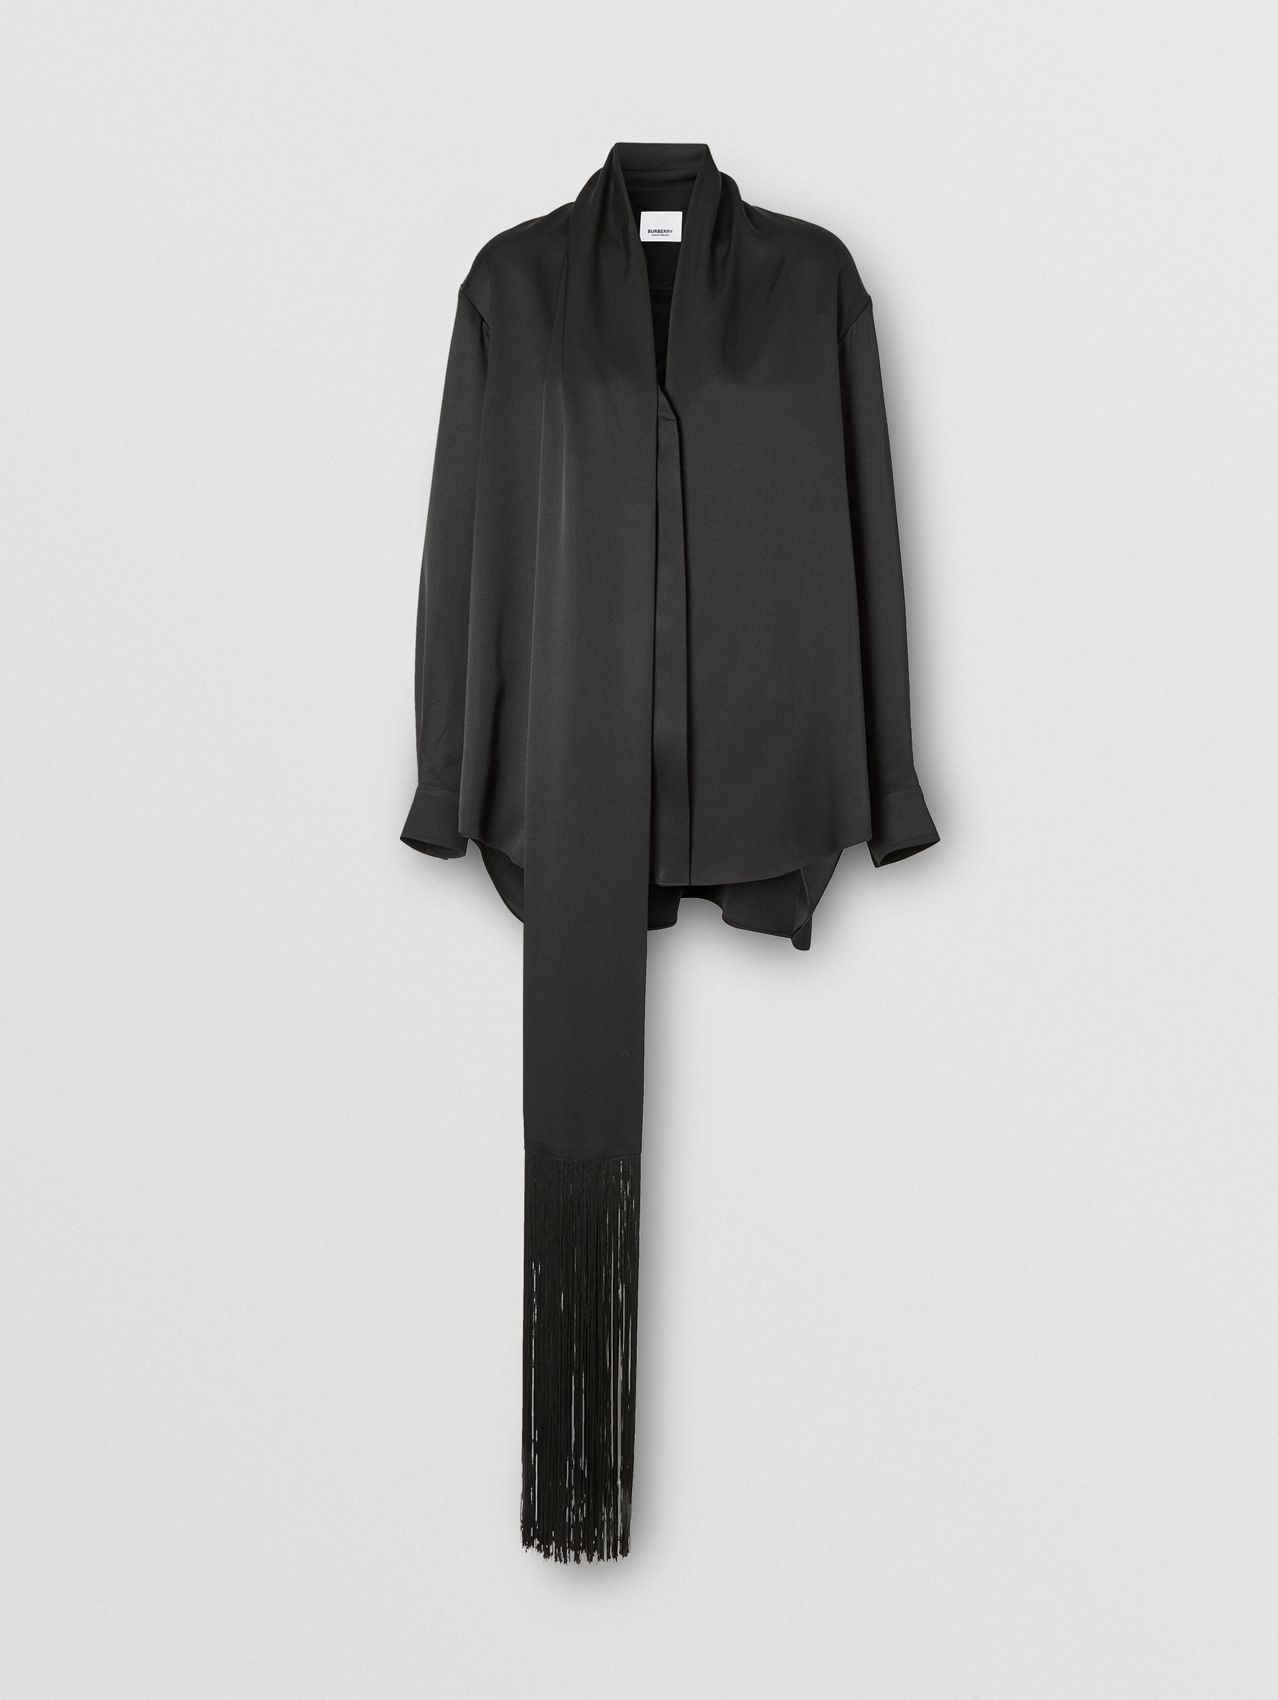 Fringed Scarf Detail Silk Satin Shirt in Black